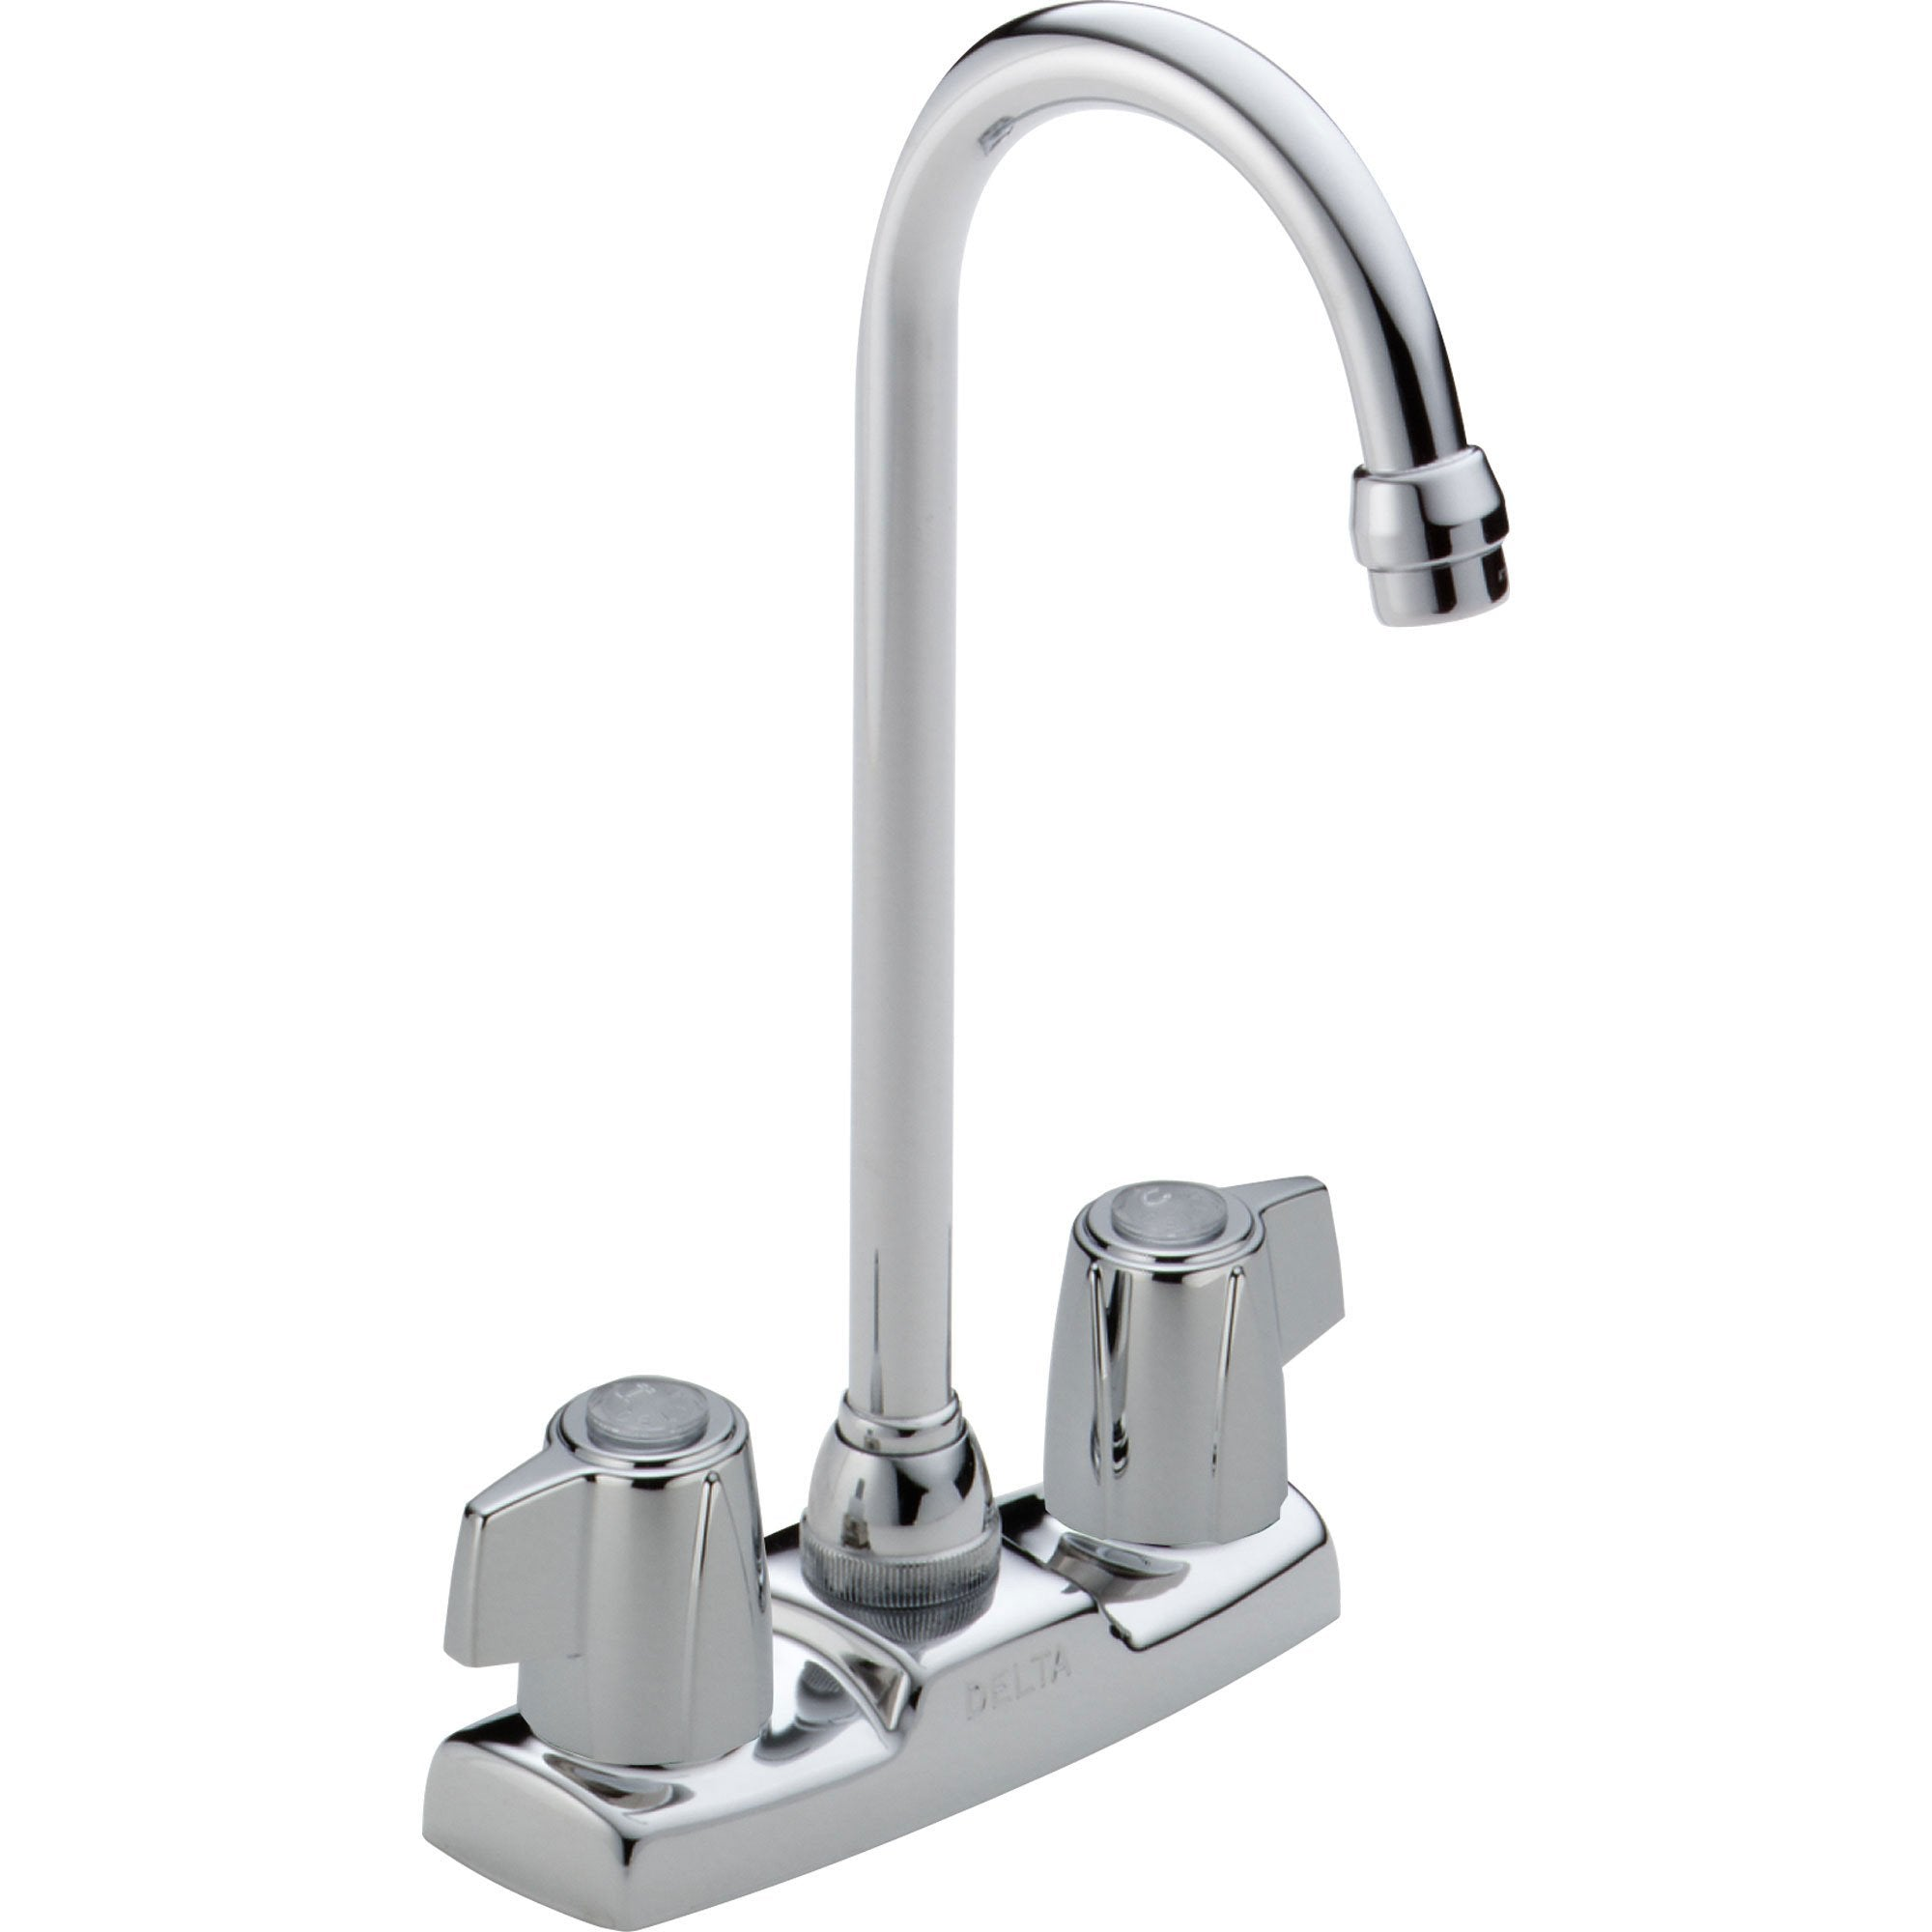 Delta Gooseneck Spout Two Handle Chrome Bar / Prep Sink Faucet 555810